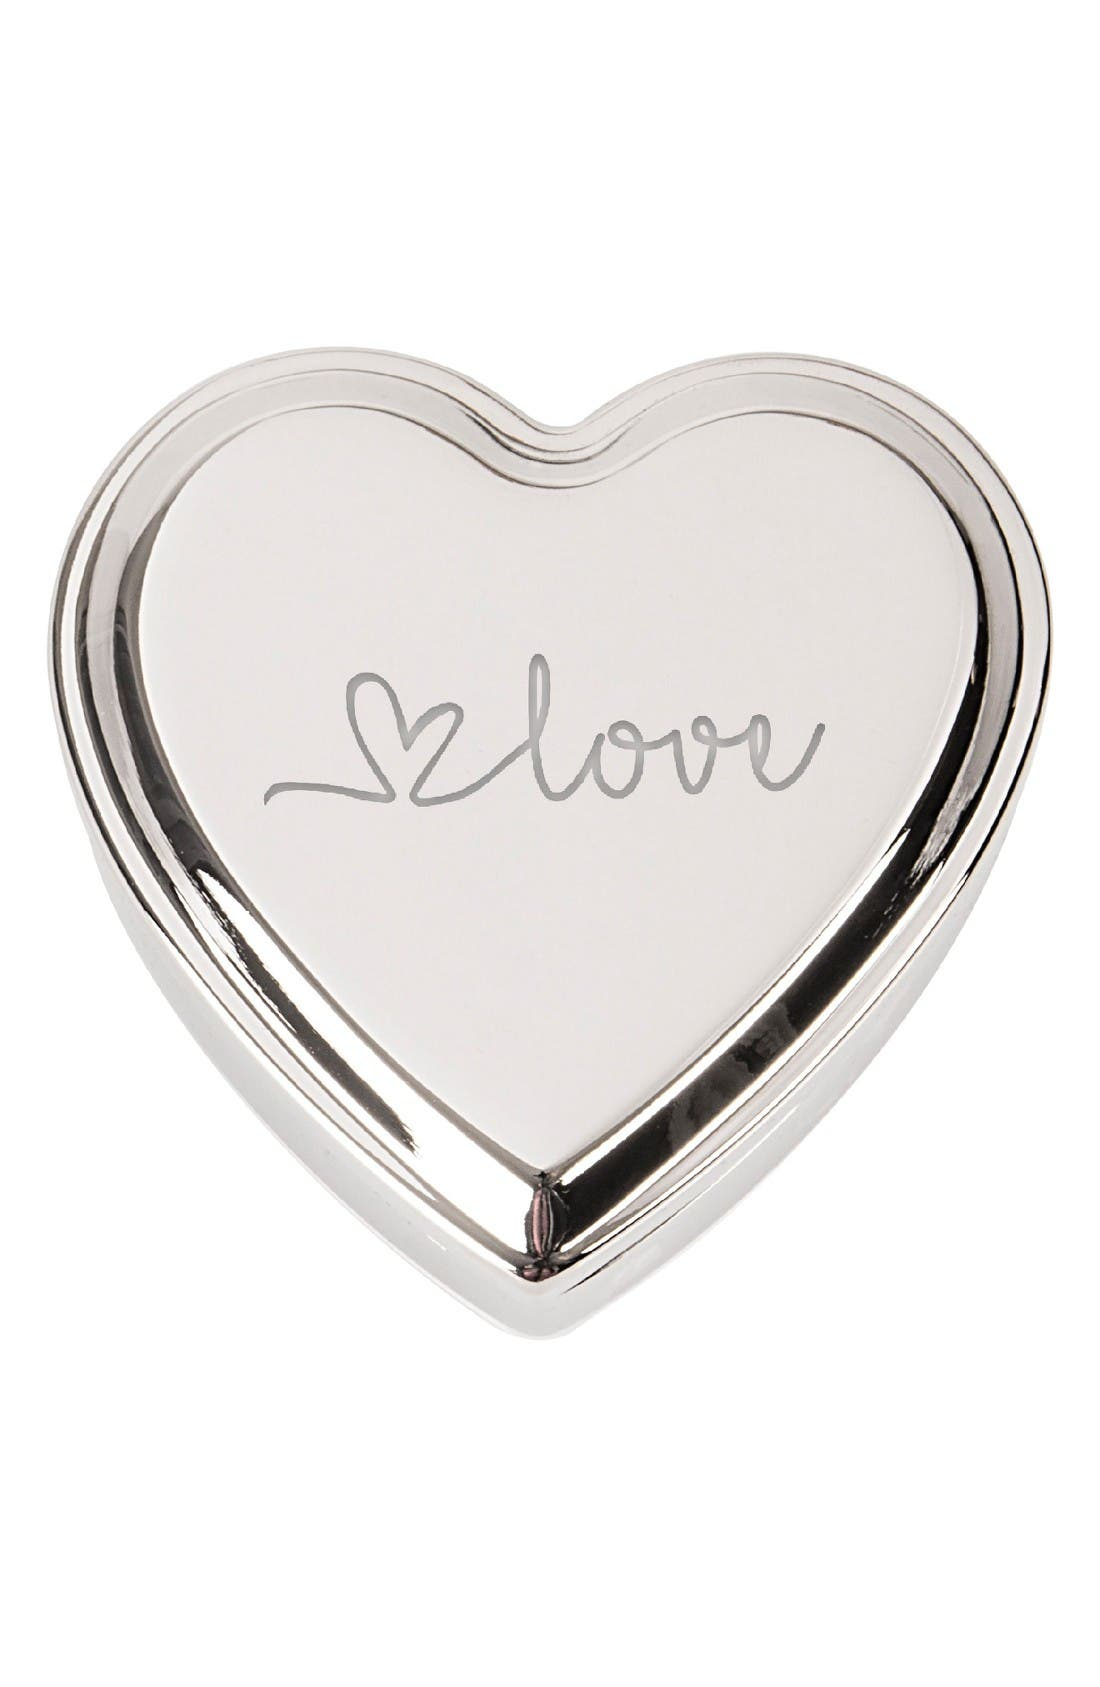 Alternate Image 1 Selected - Cathy's Concepts Love Heart Keepsake Box